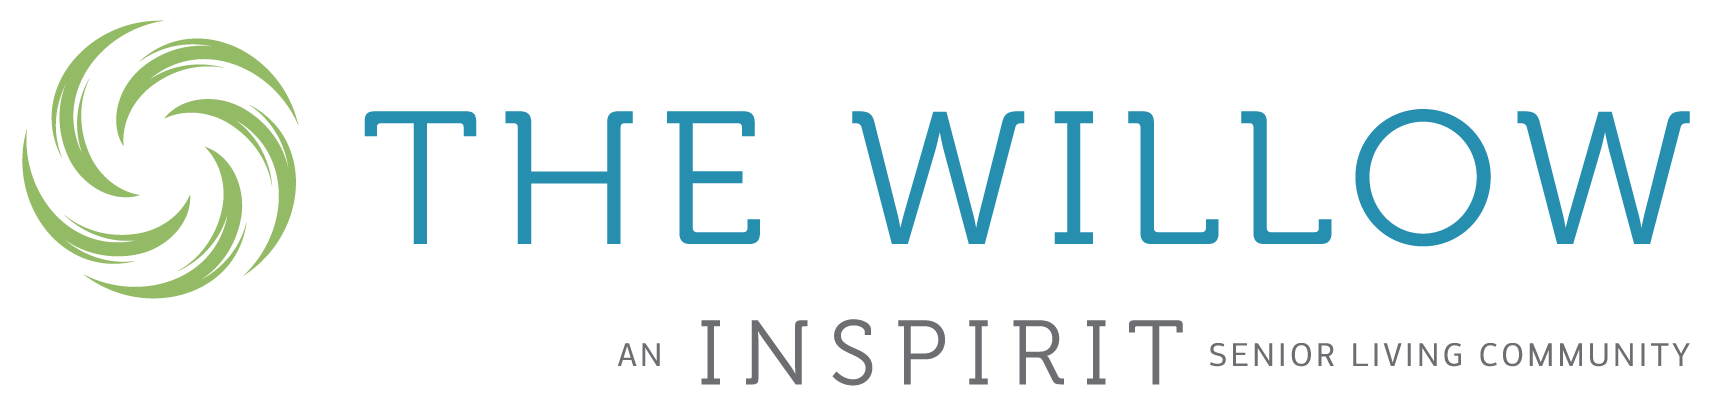 The Willow logo